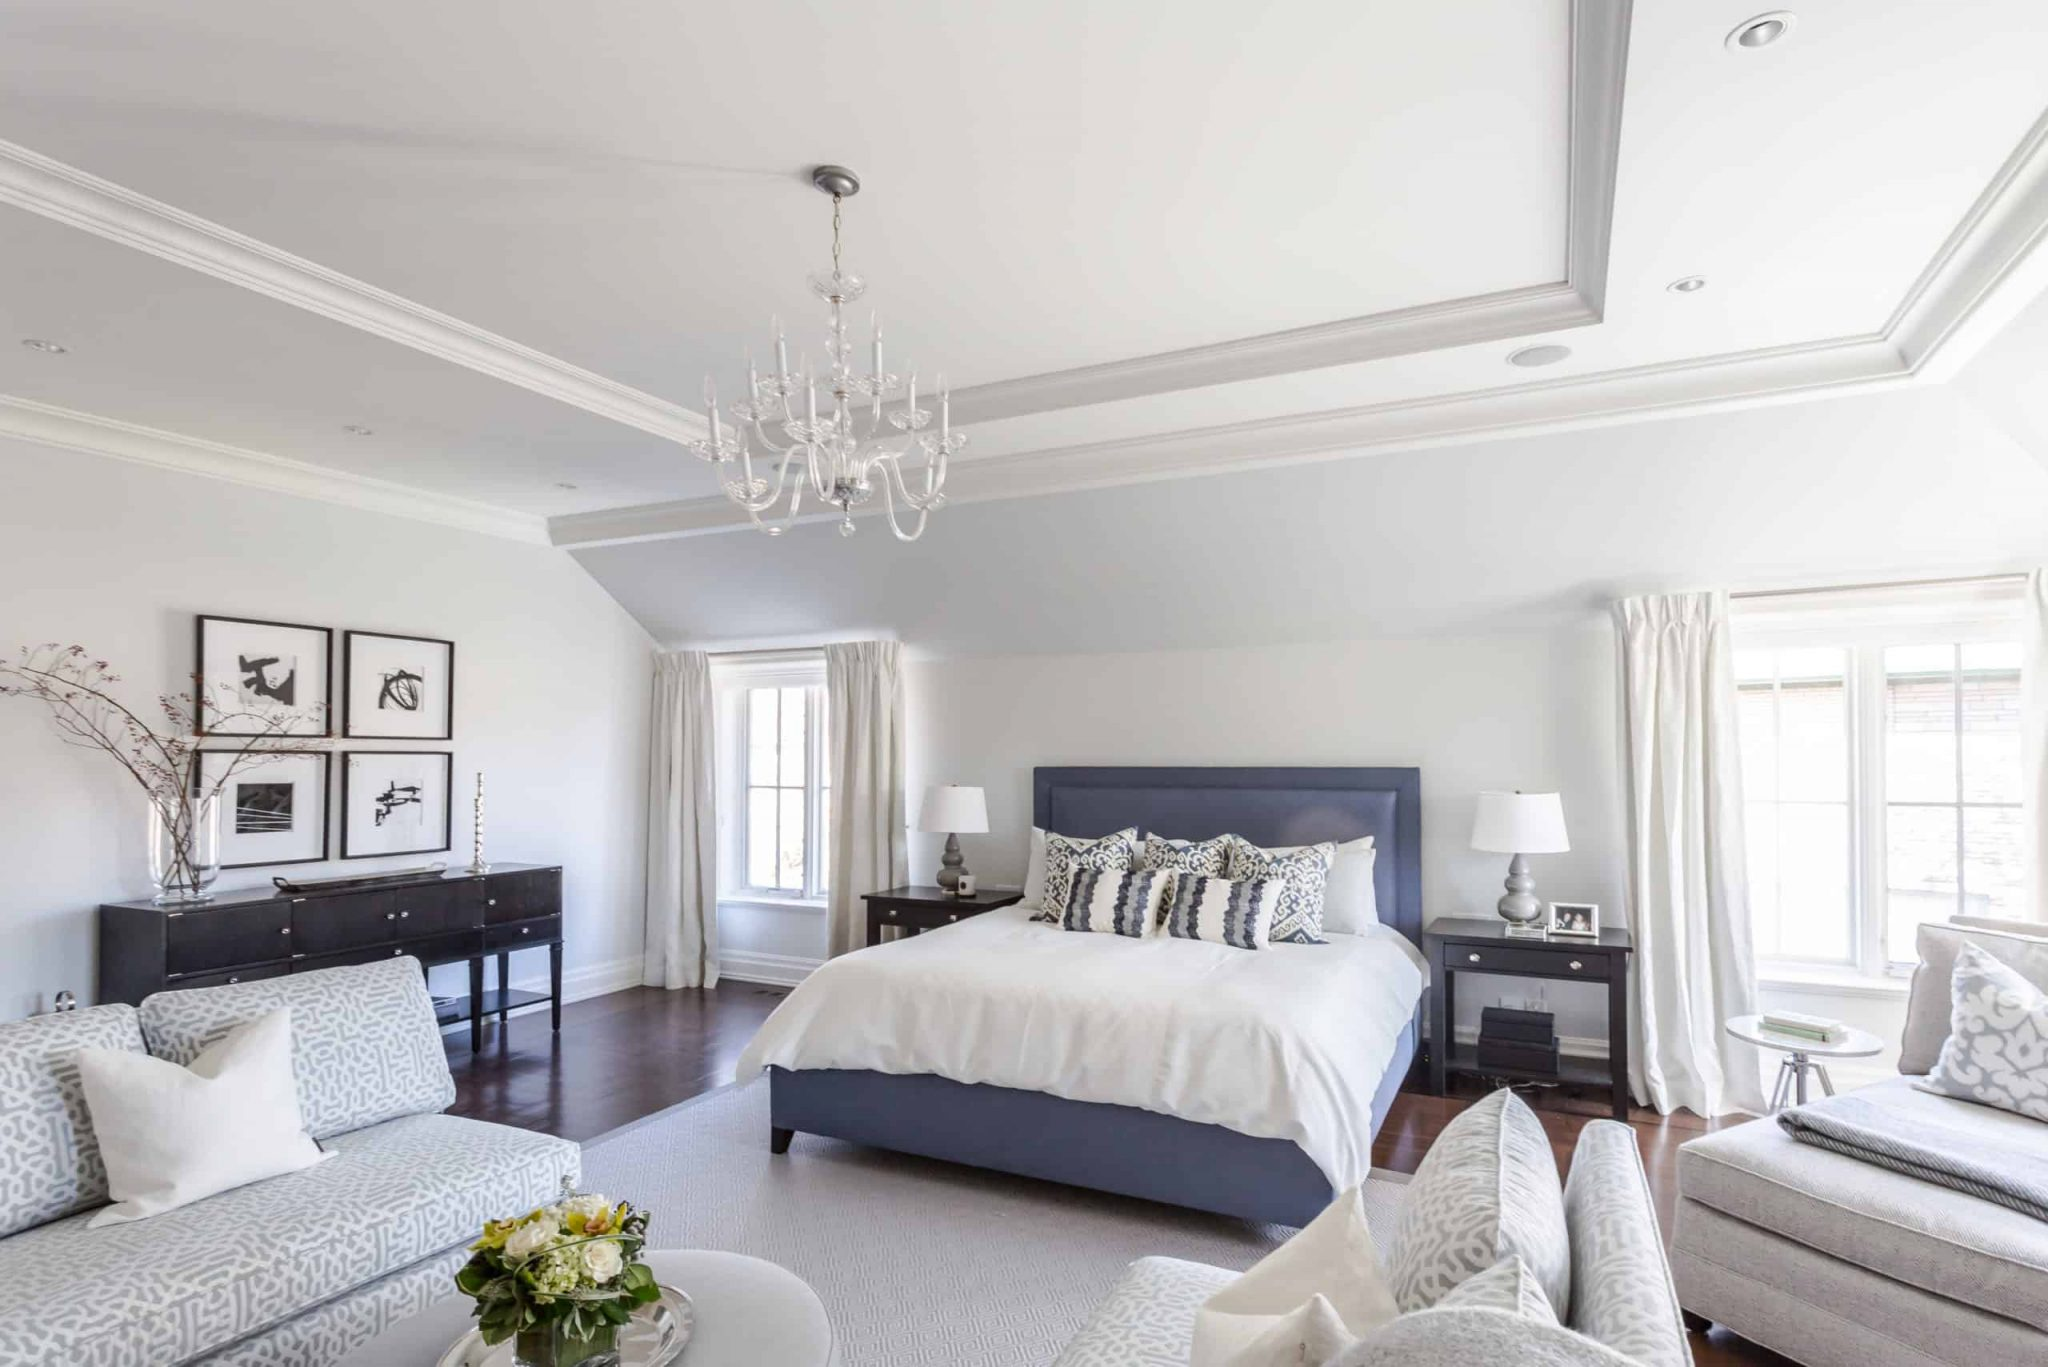 Blue bed with white blankets inside a large bedroom